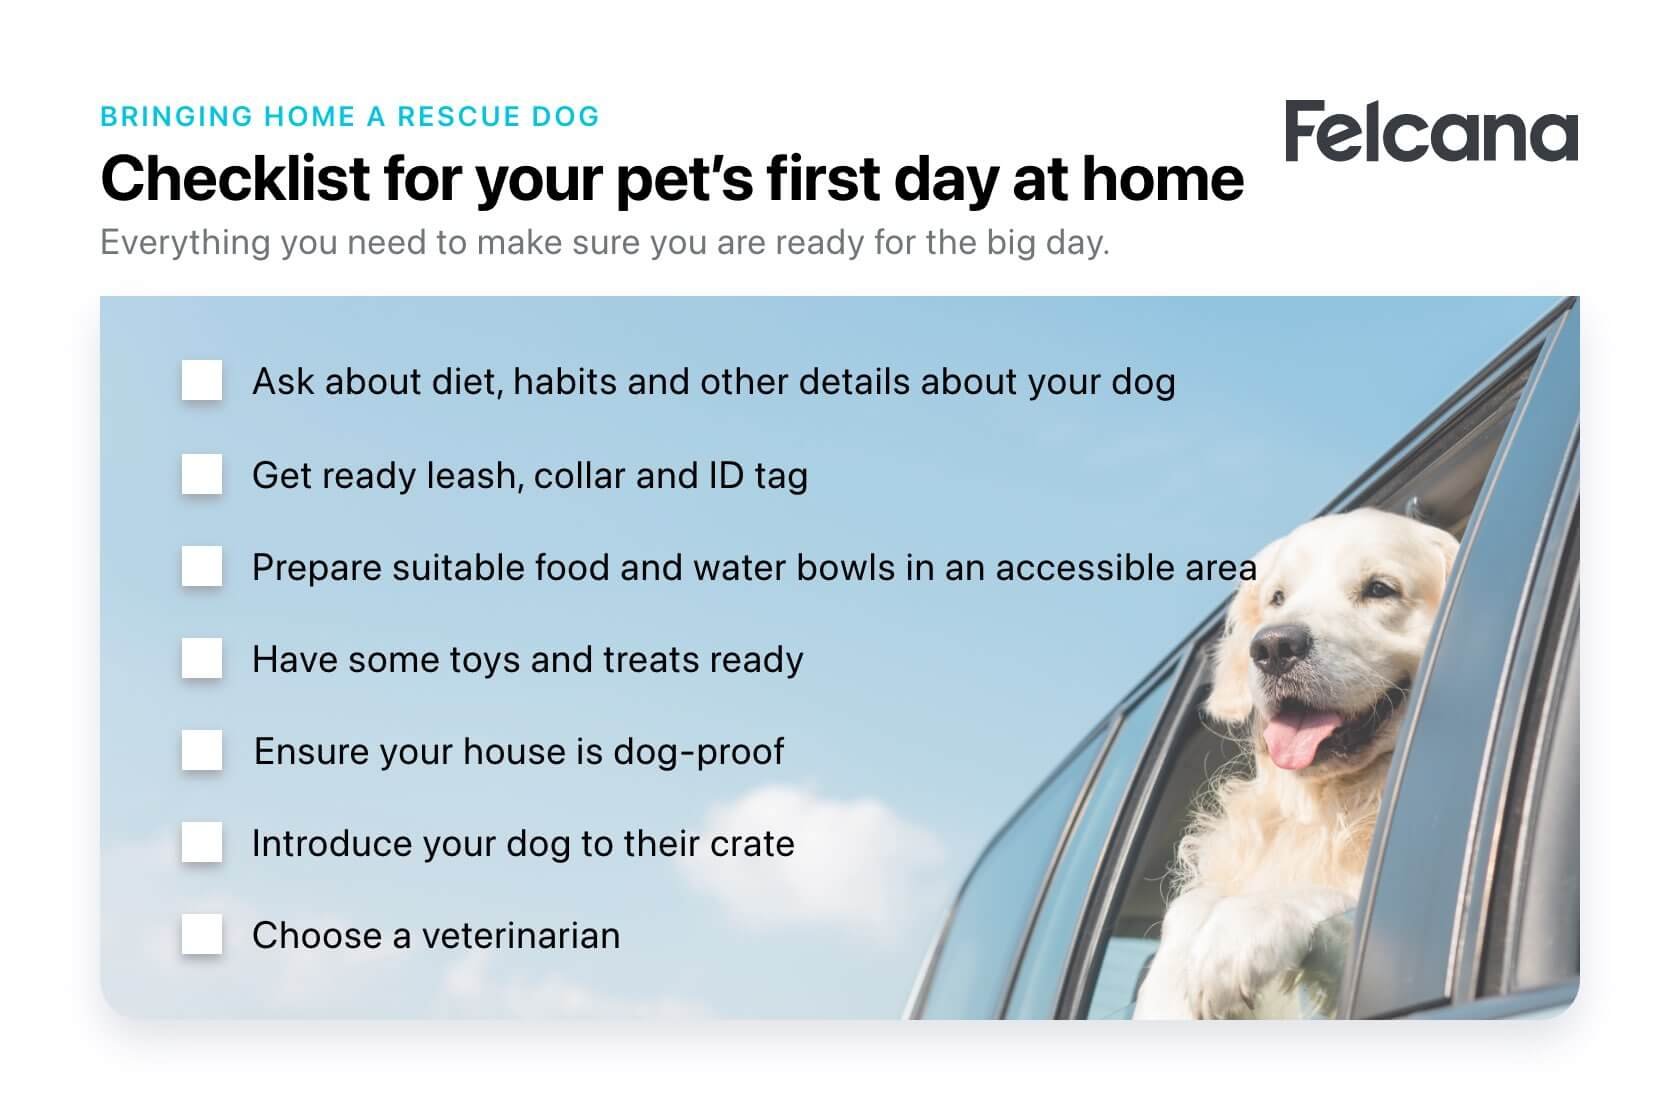 Checklist for your pet's first day at home